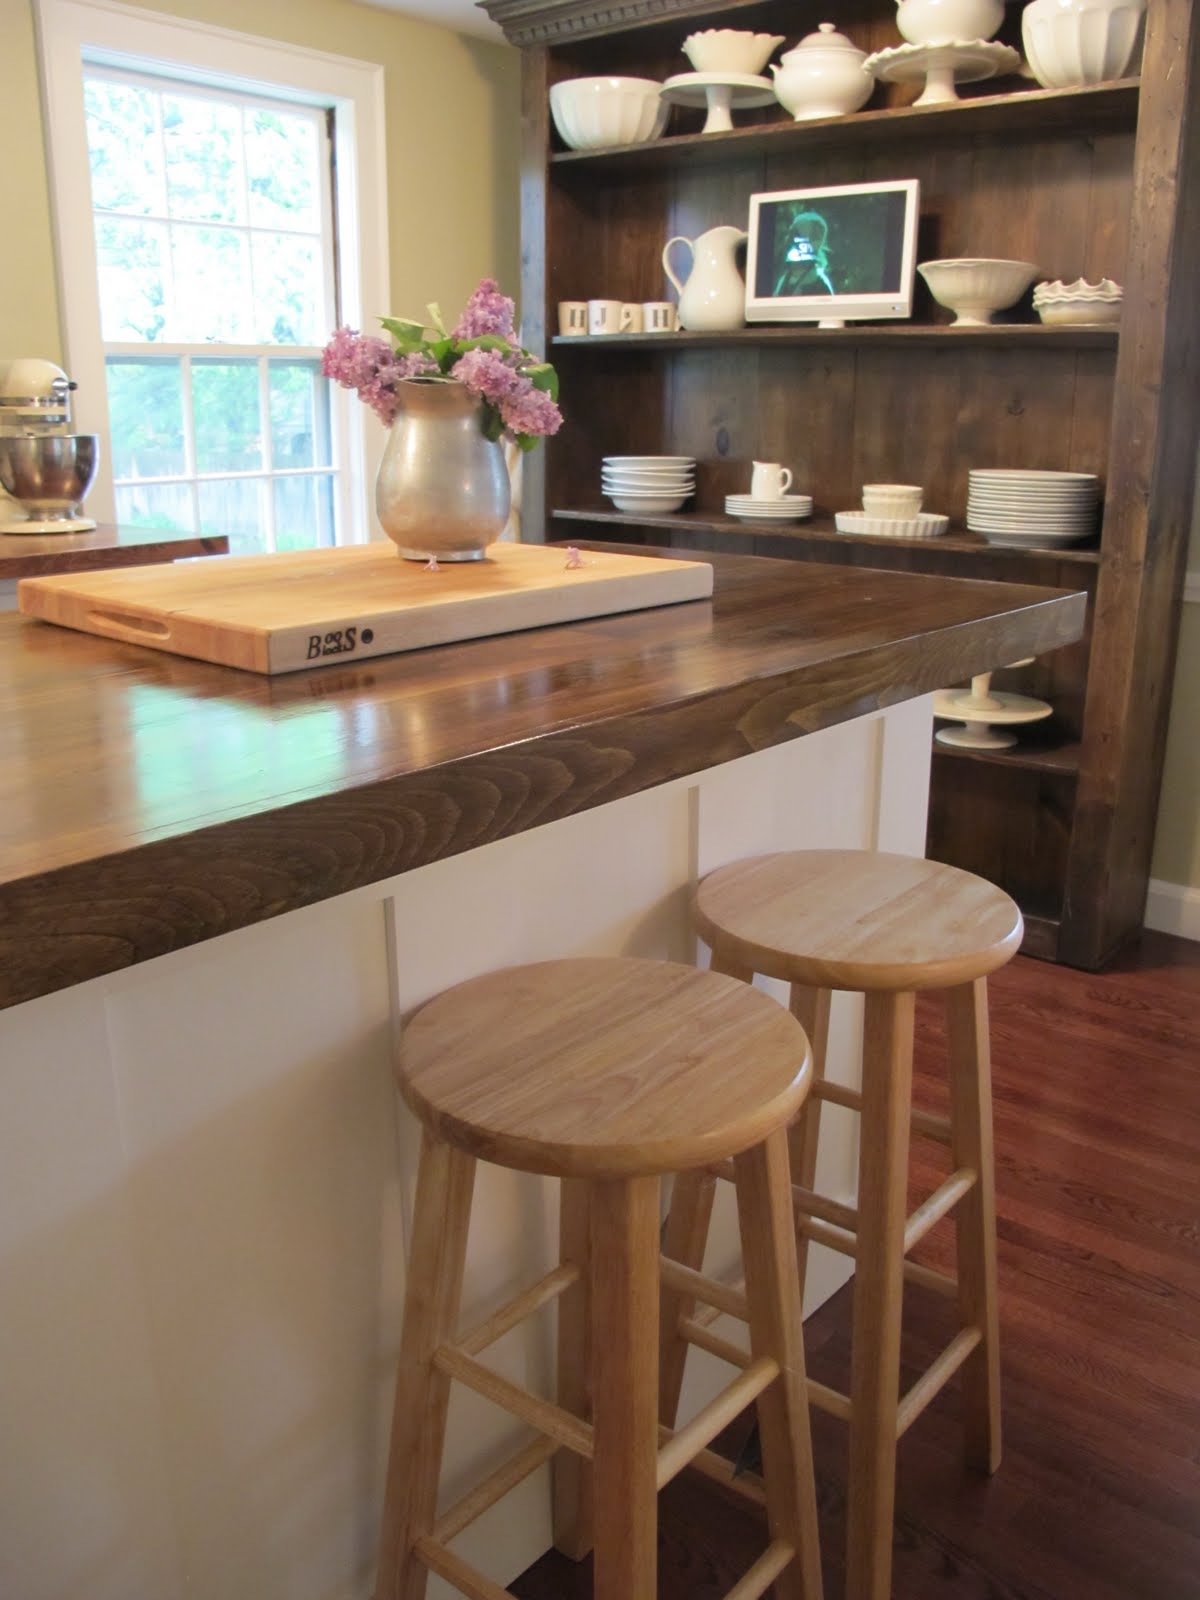 kitchen island diy kitchen island with kitchen countertop material Wednesday May 18